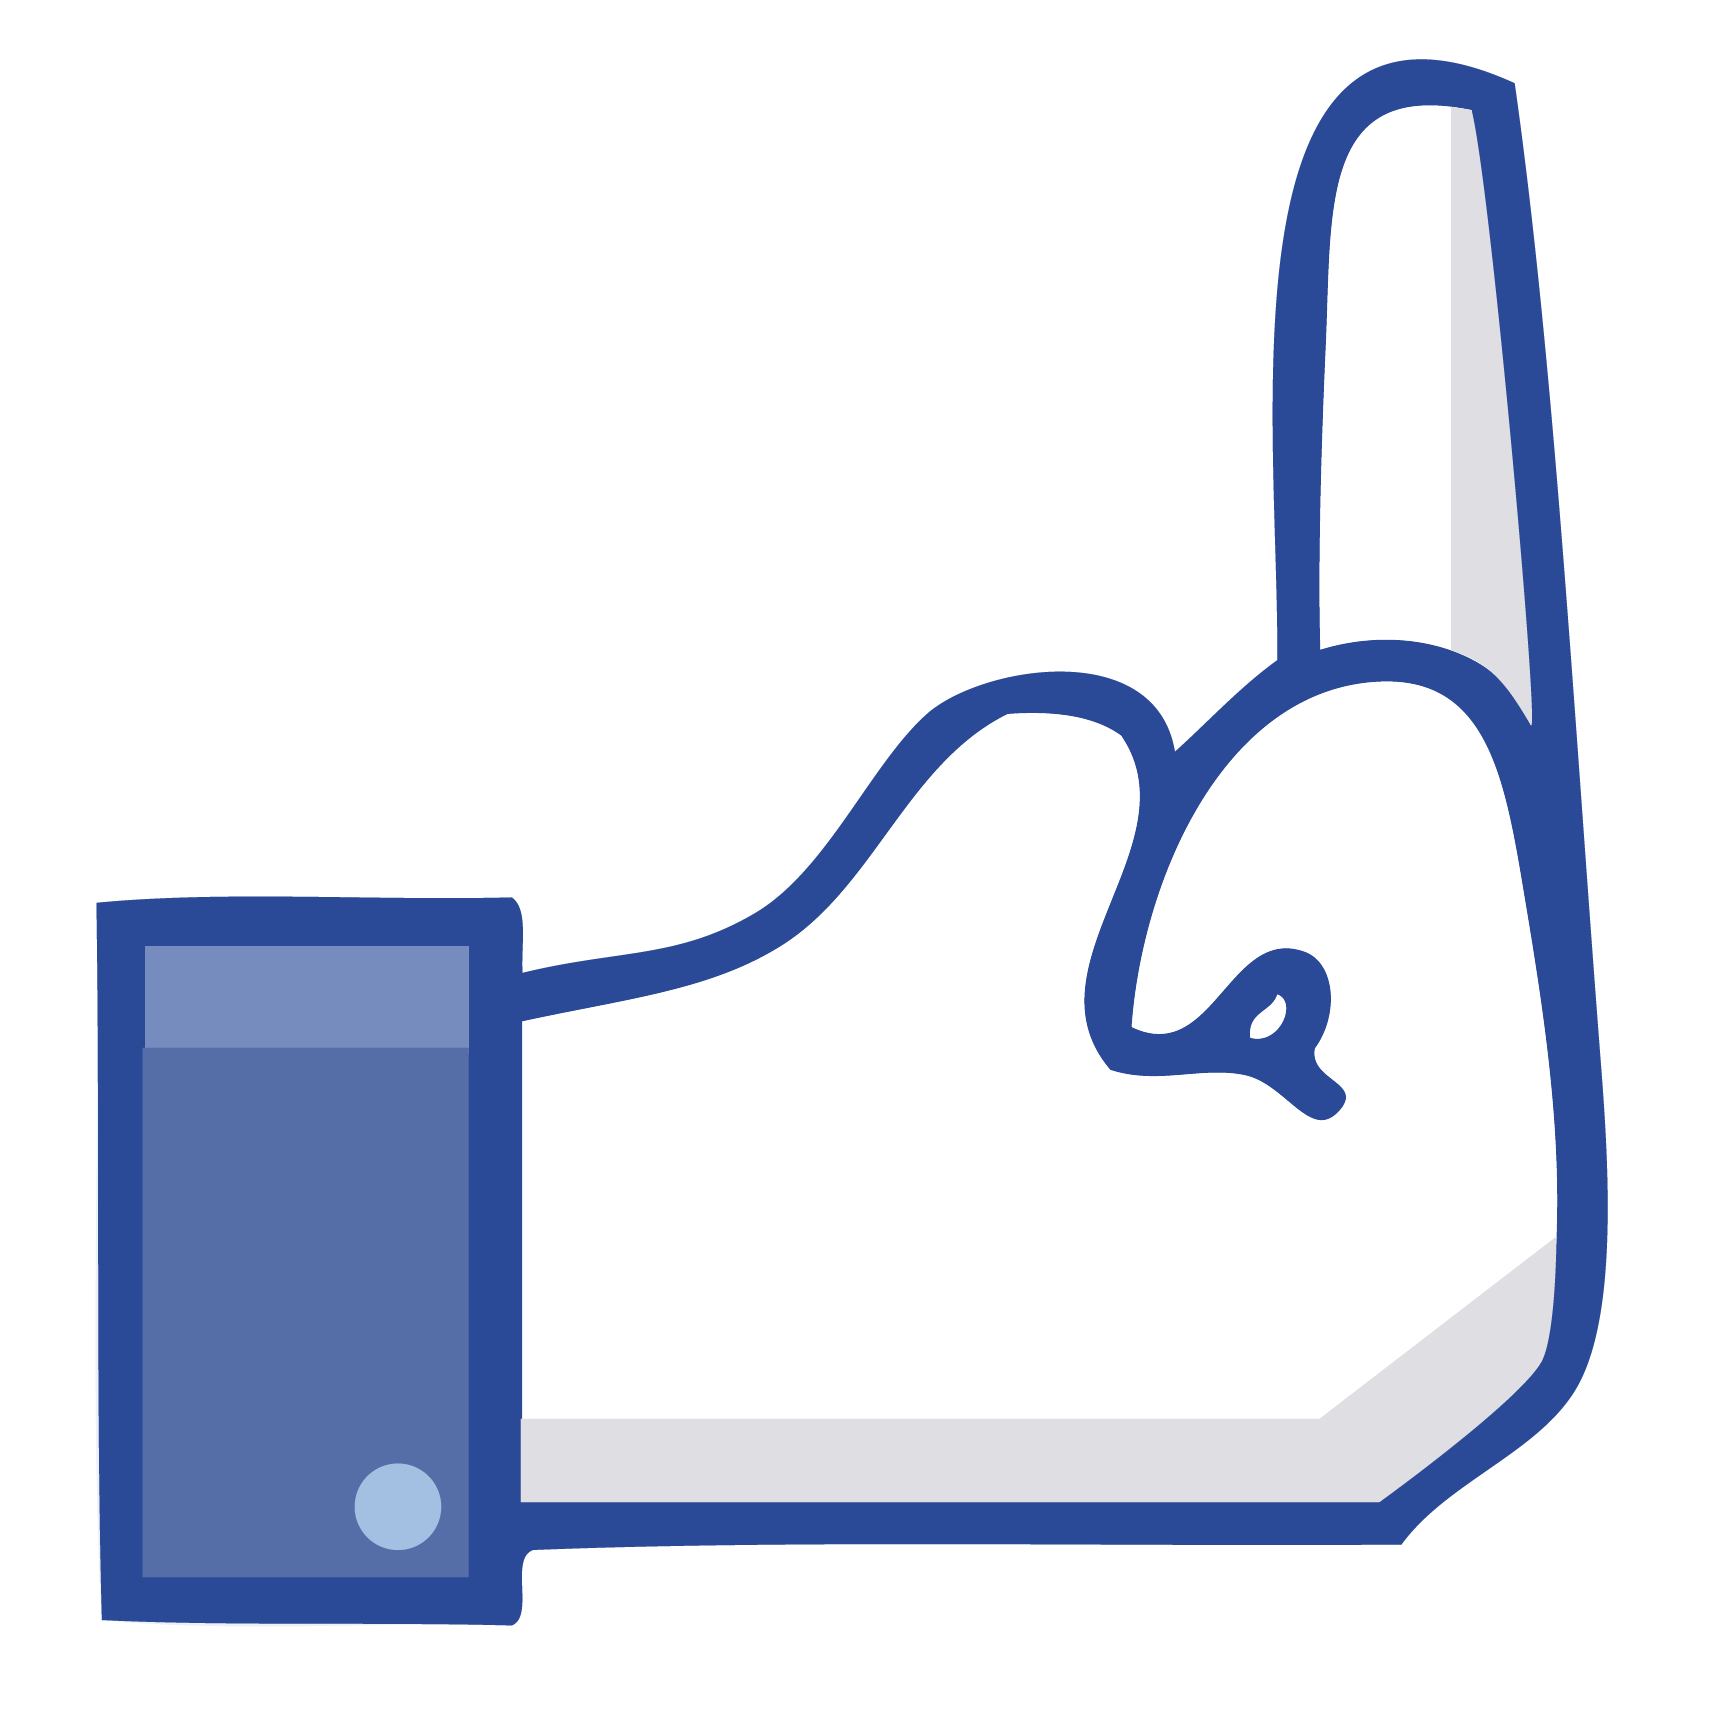 Facebook Fakebook Steal klauen Fuck Artist Button-03